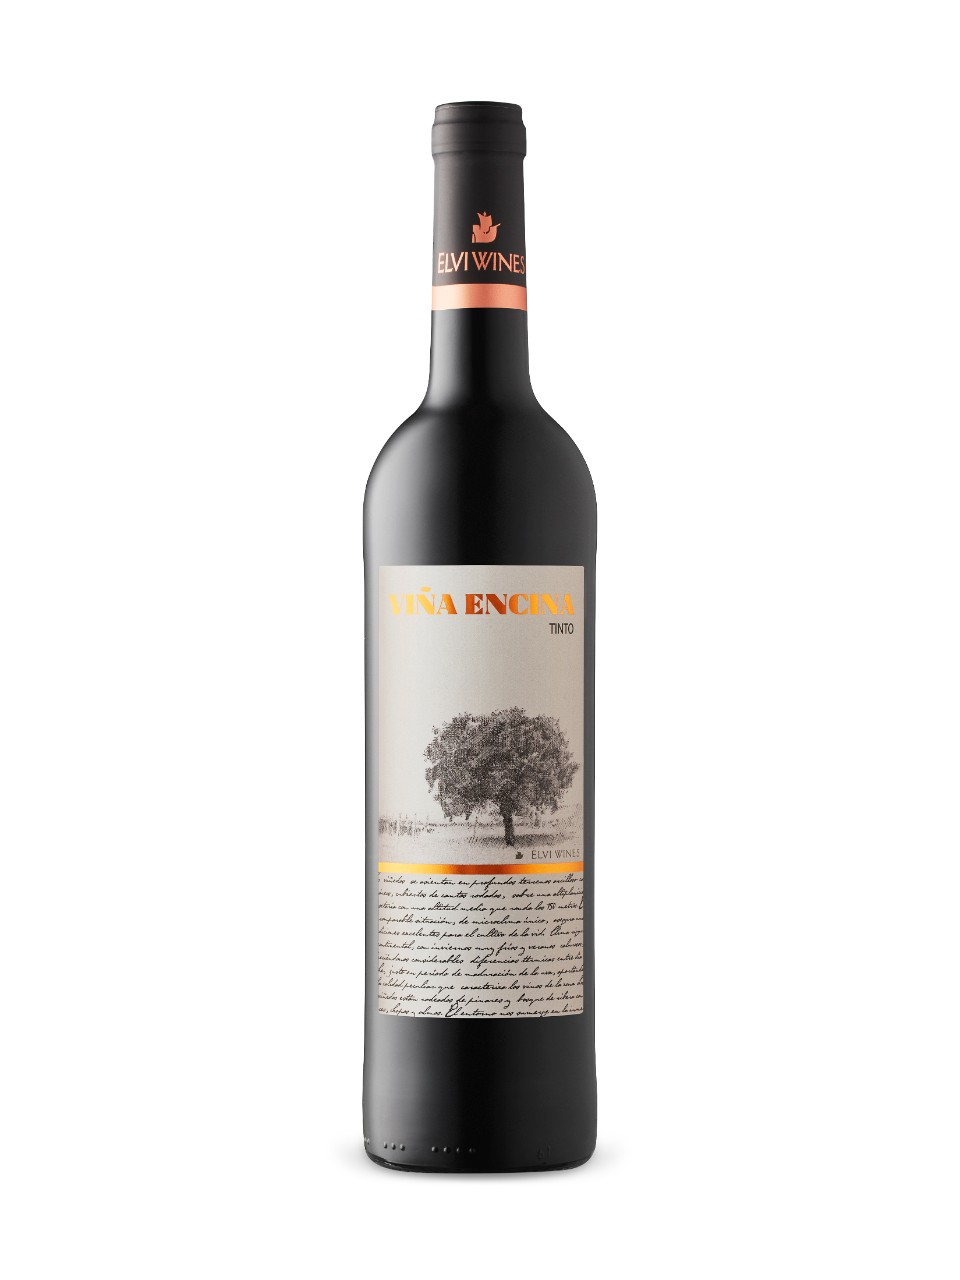 Image for Vina Encina Tinto La Mancha 2017 from LCBO